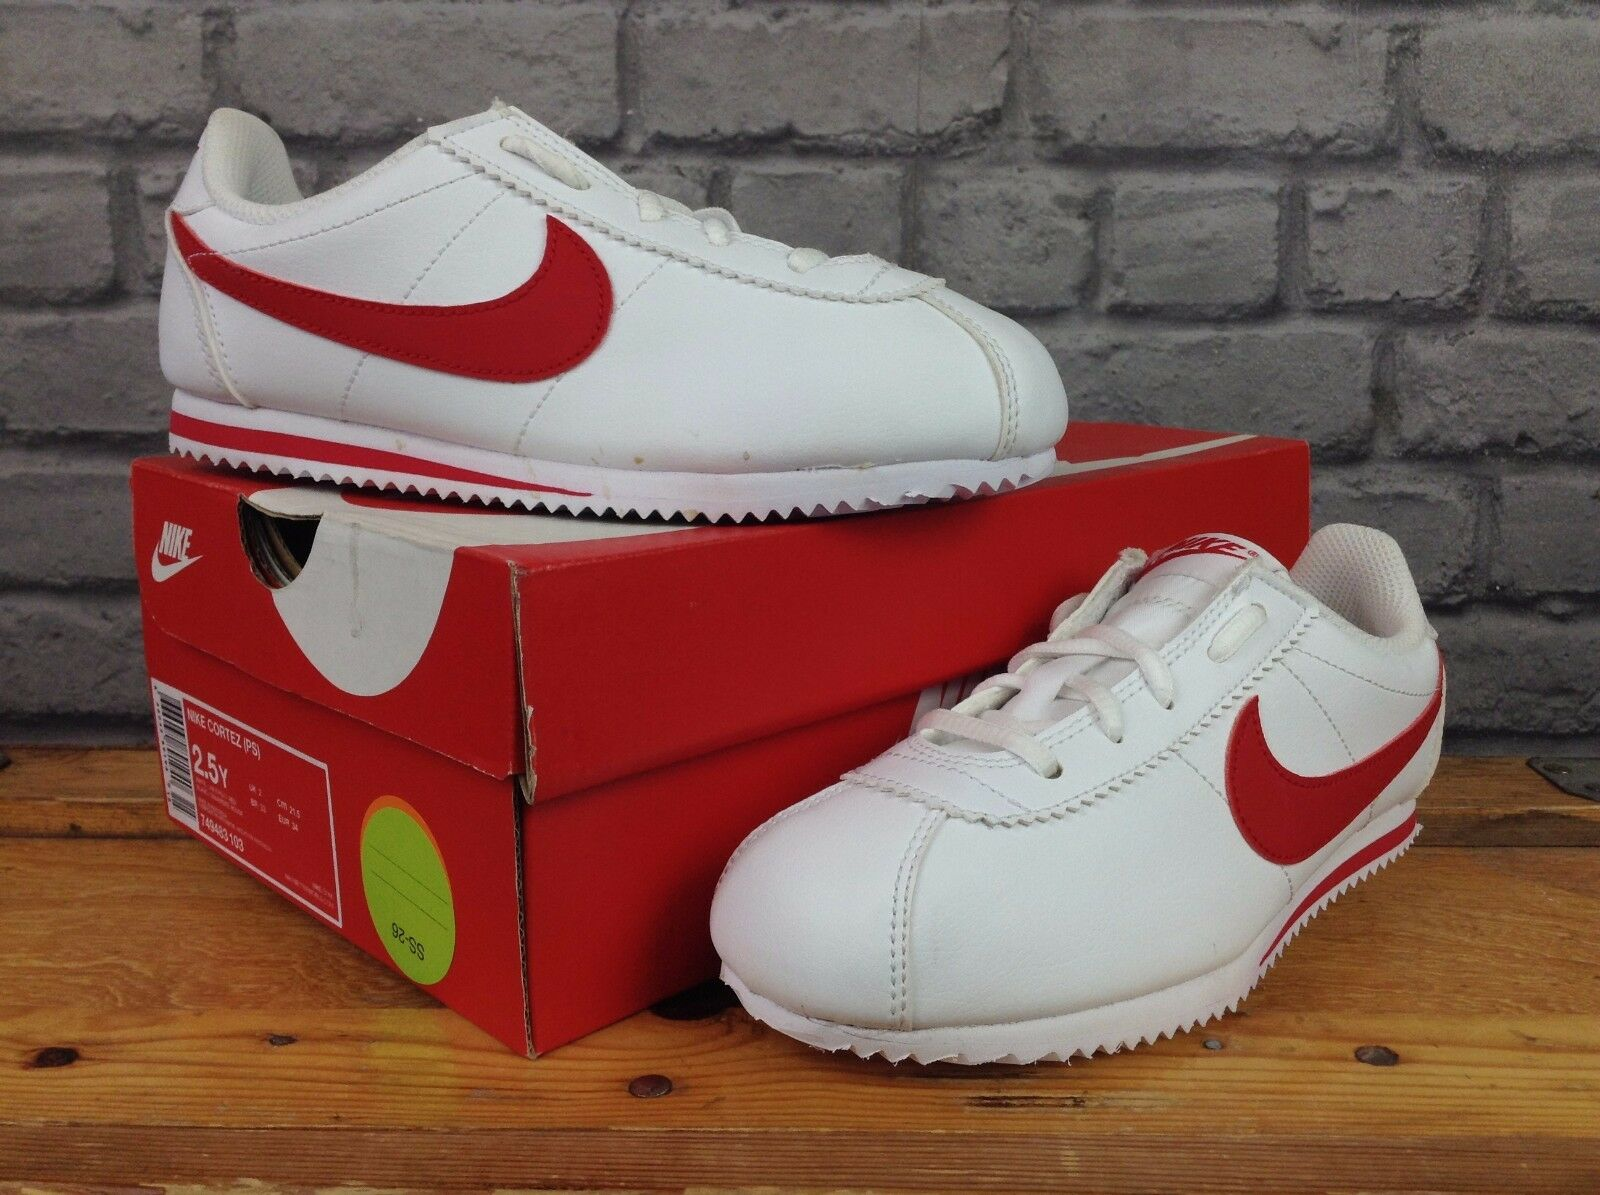 wholesale price authentic quality half price Details about NIKE CORTEZ (PS) GIRLS LADIES UK 12C,1,2,5.5,6 WHITE & RED  LEATHER TRAINERS